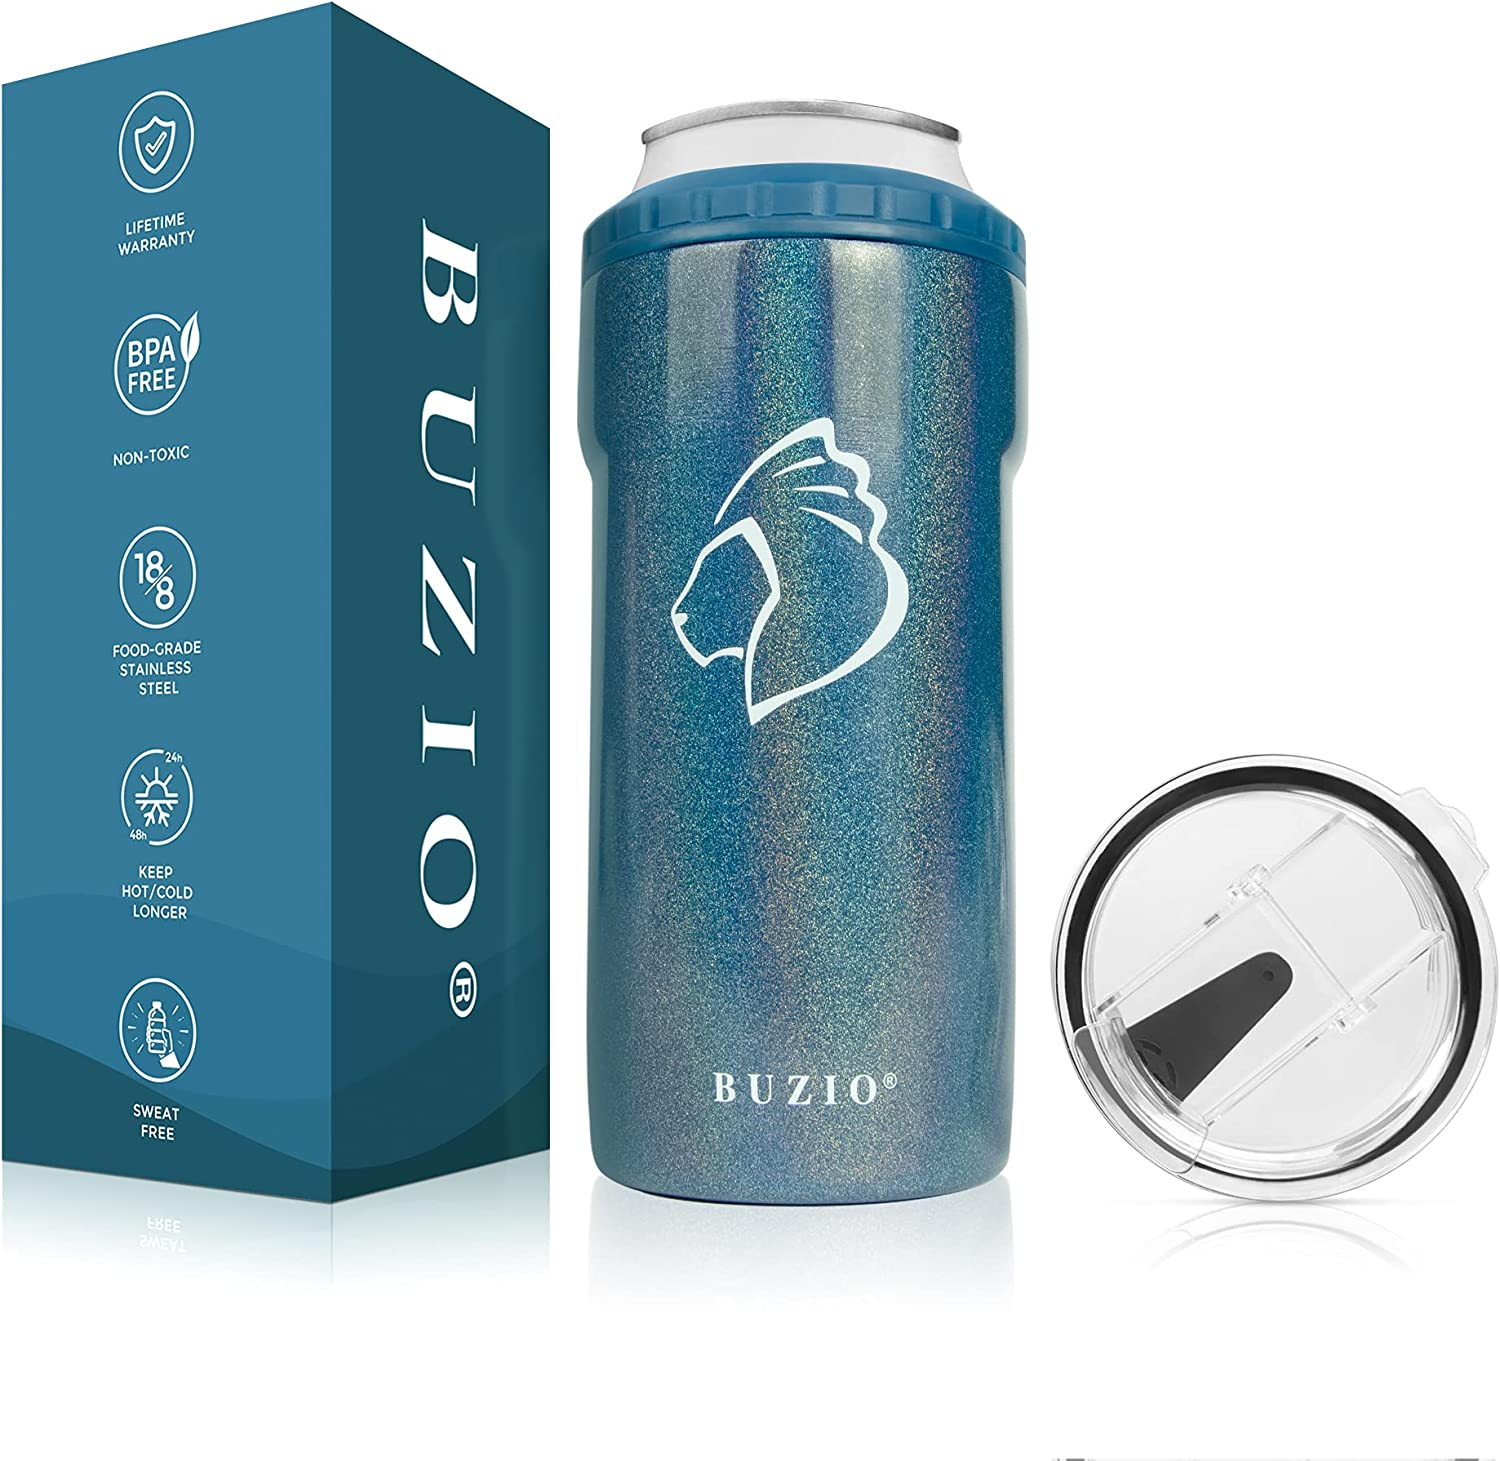 BUZIO 4-IN-1 Can Cooler Holder, Double Wall Vacuum Insulted Stainless Steel Beer Keeper for Beer, Soda, Beverages and Mixed Drink Sweat-Free,Cobalt